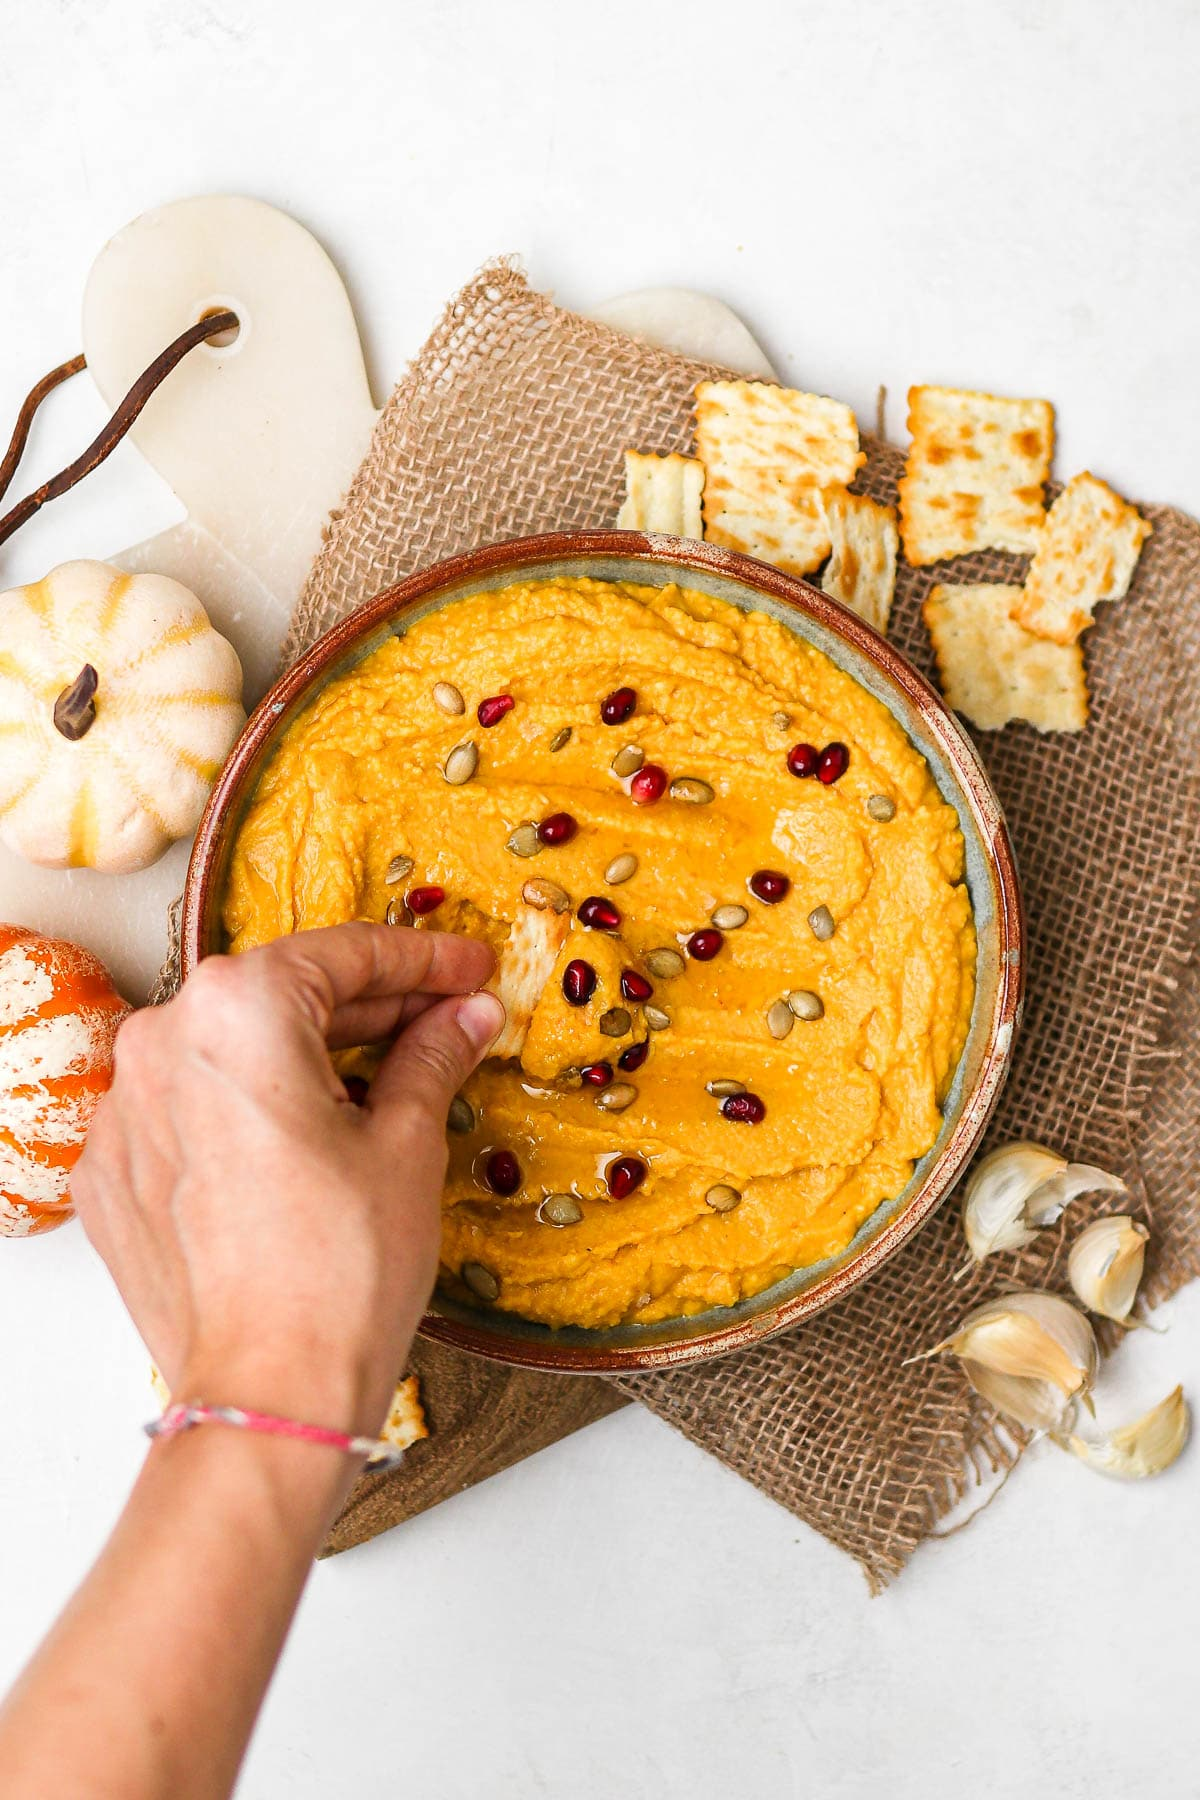 pumpkin hummus in a bowl with hand dipping onto a chip.